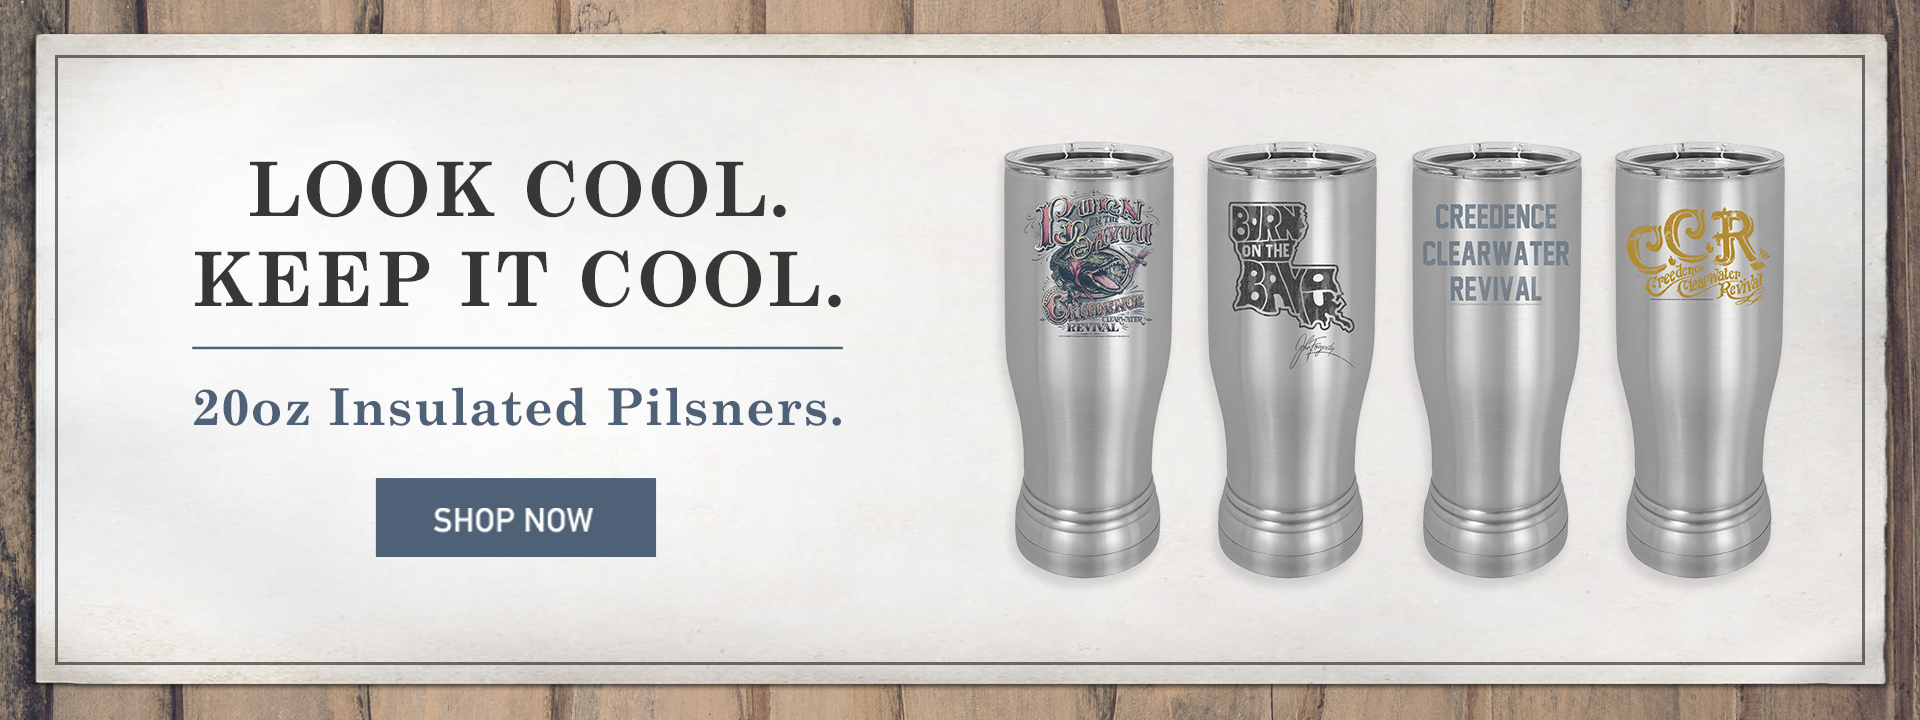 Look cool. Keep it cool. 20oz insulated pilsners. Shop now.